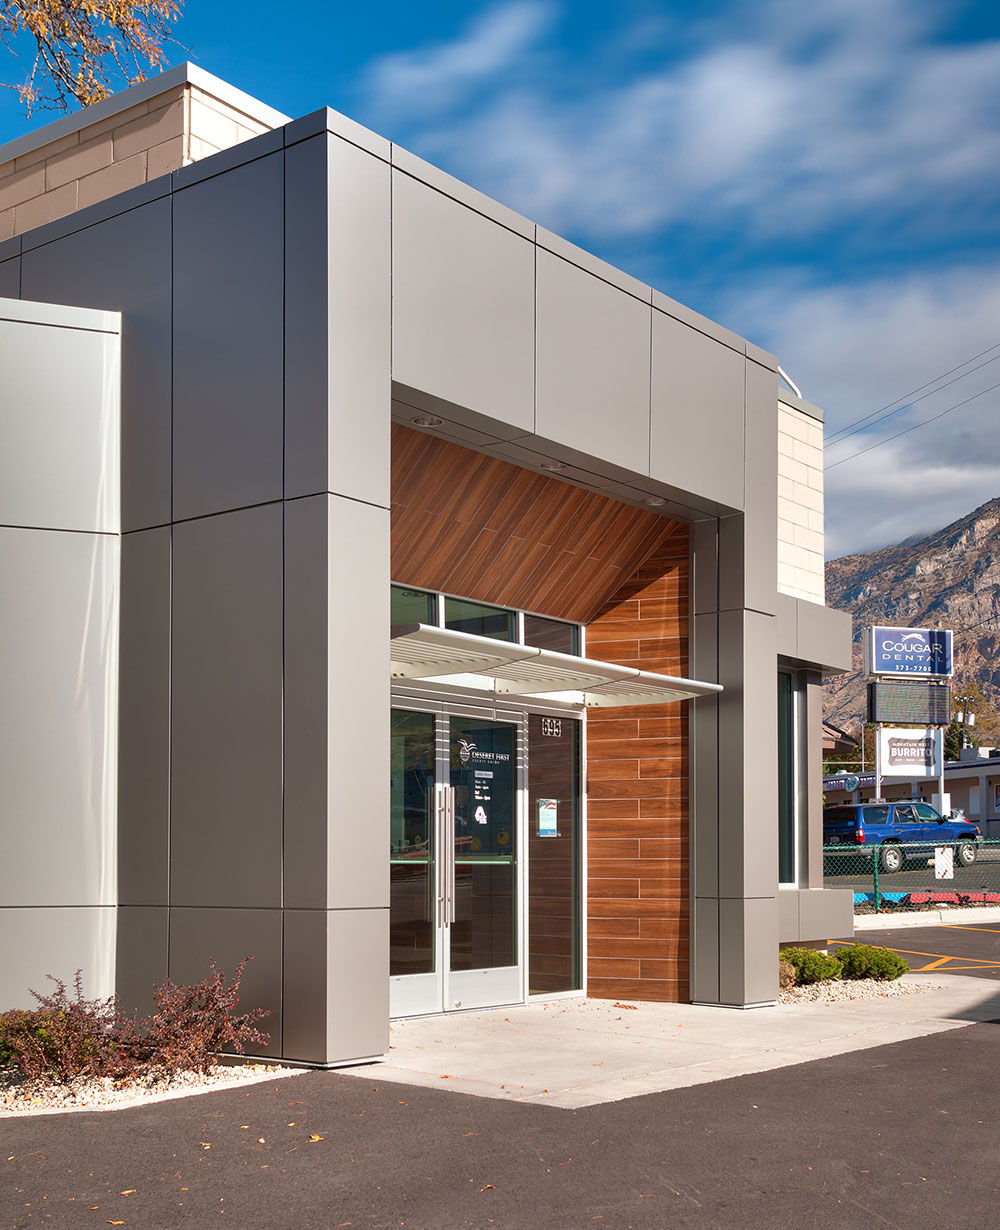 Commercial-Architecture-Utah-Deseret-First-Credit-Union-Provo-Branch-(9)